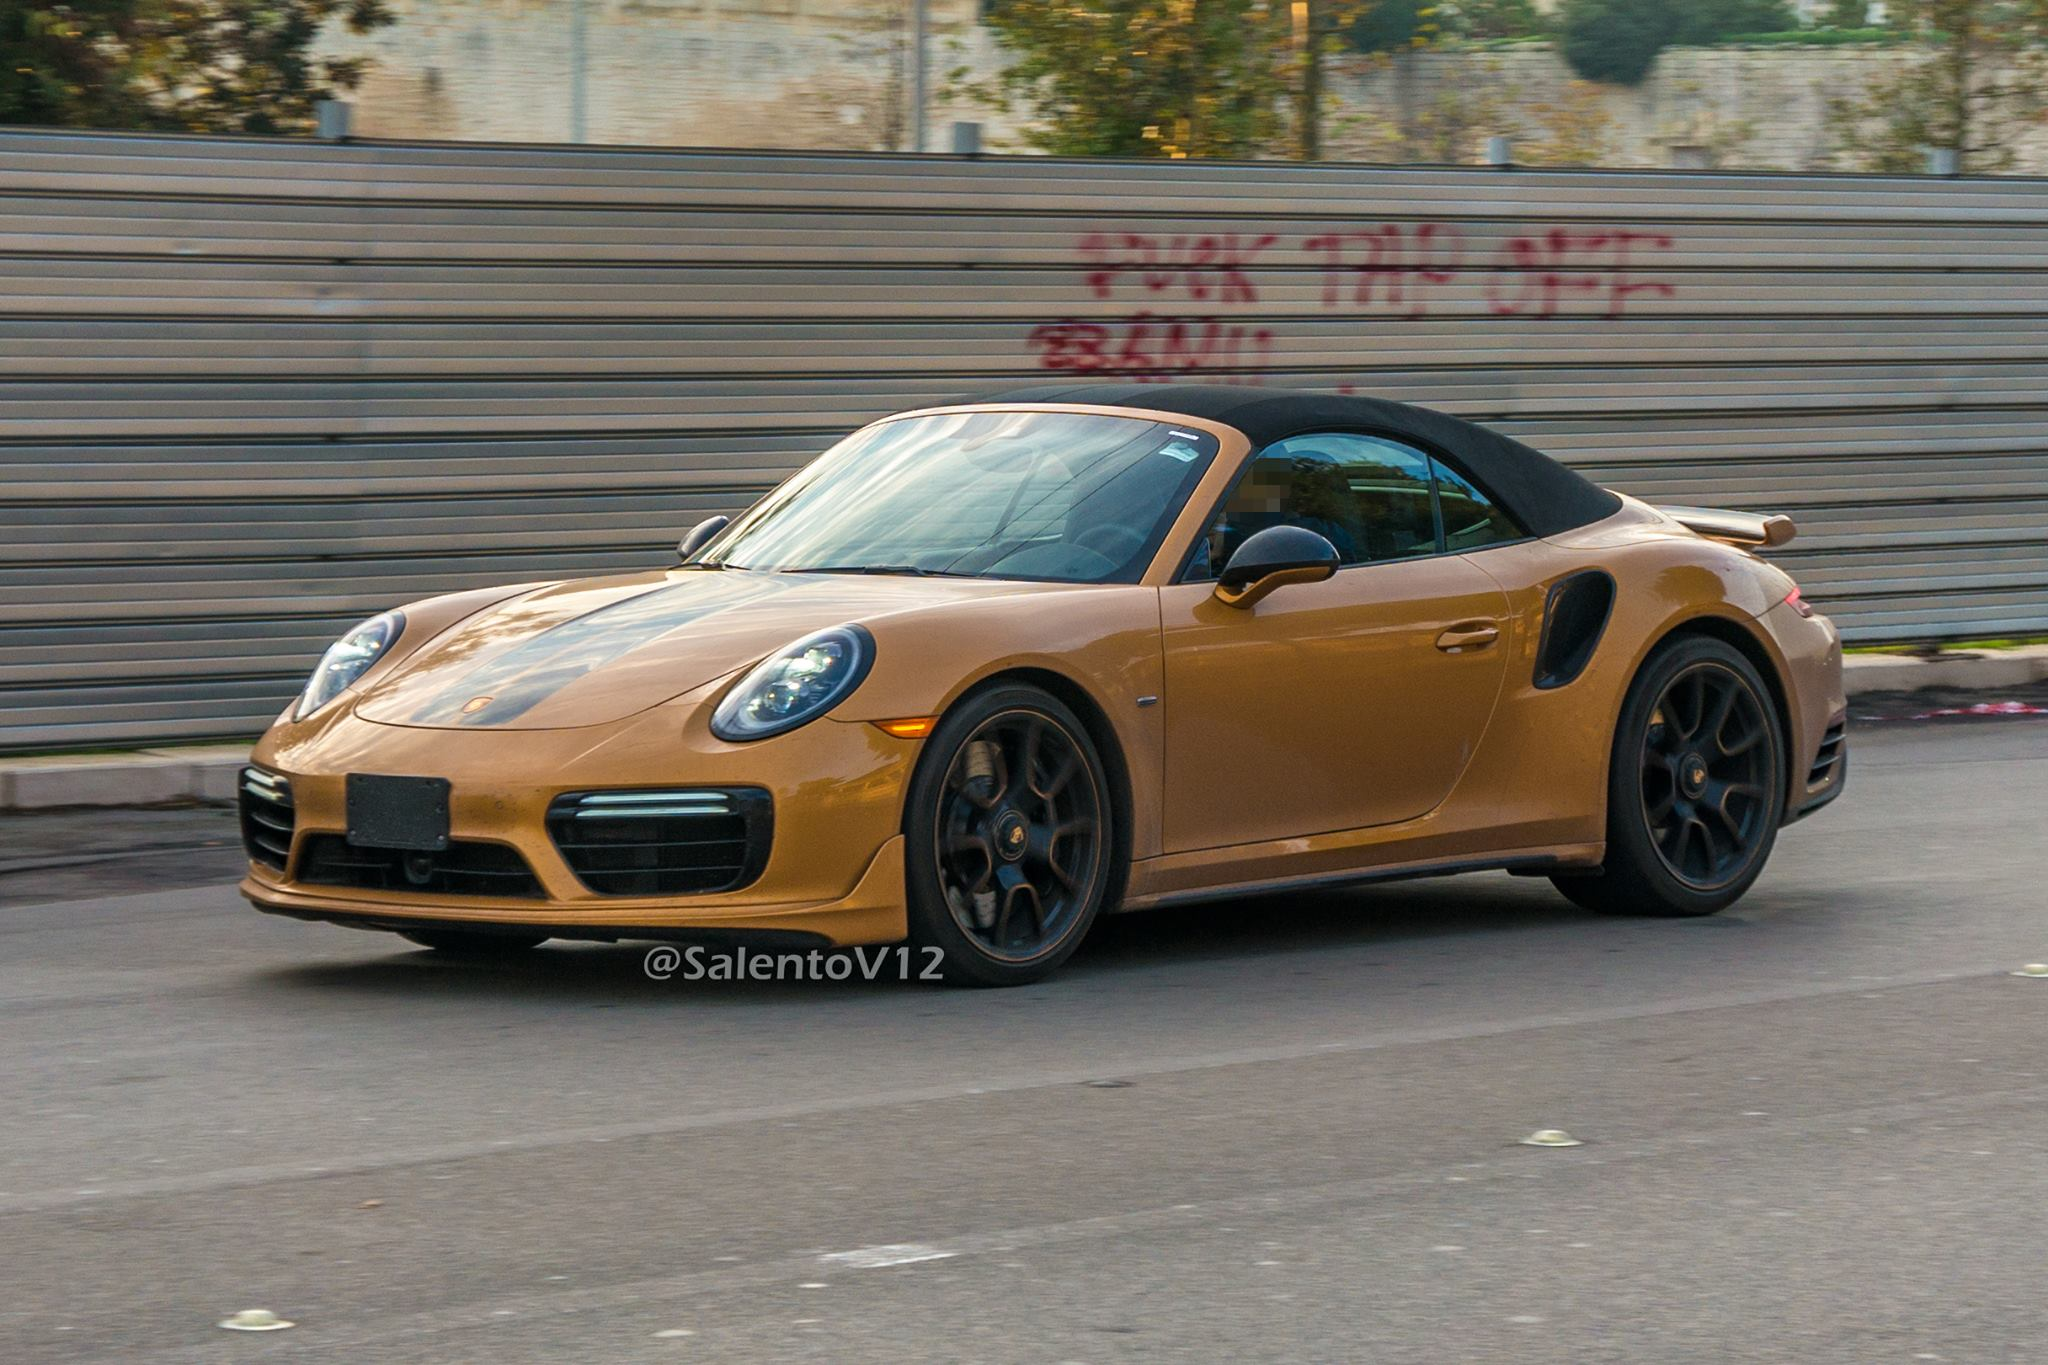 porsche 911 turbo s exclusive series cabriolet spied. Black Bedroom Furniture Sets. Home Design Ideas